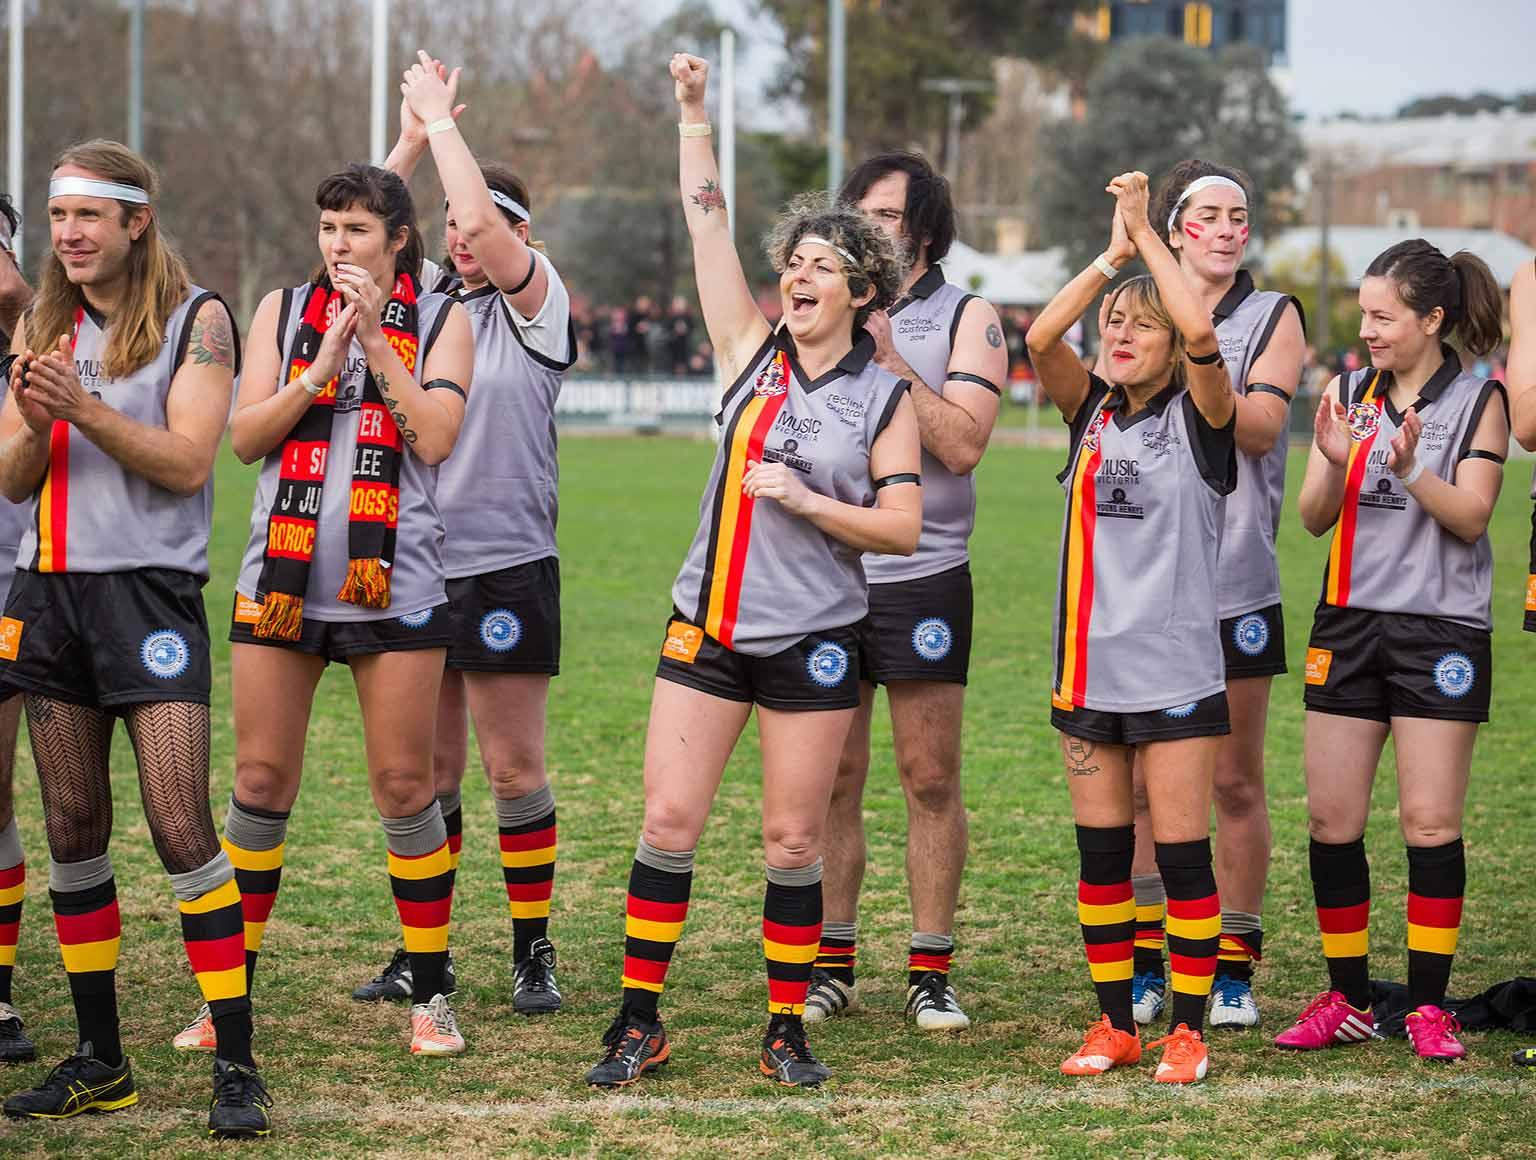 Photo of four male footballers and six female footballers from the same team, standing in a football field clapping and cheering towards a point left of the camera, a crowd along the boundary can be seen in the background.